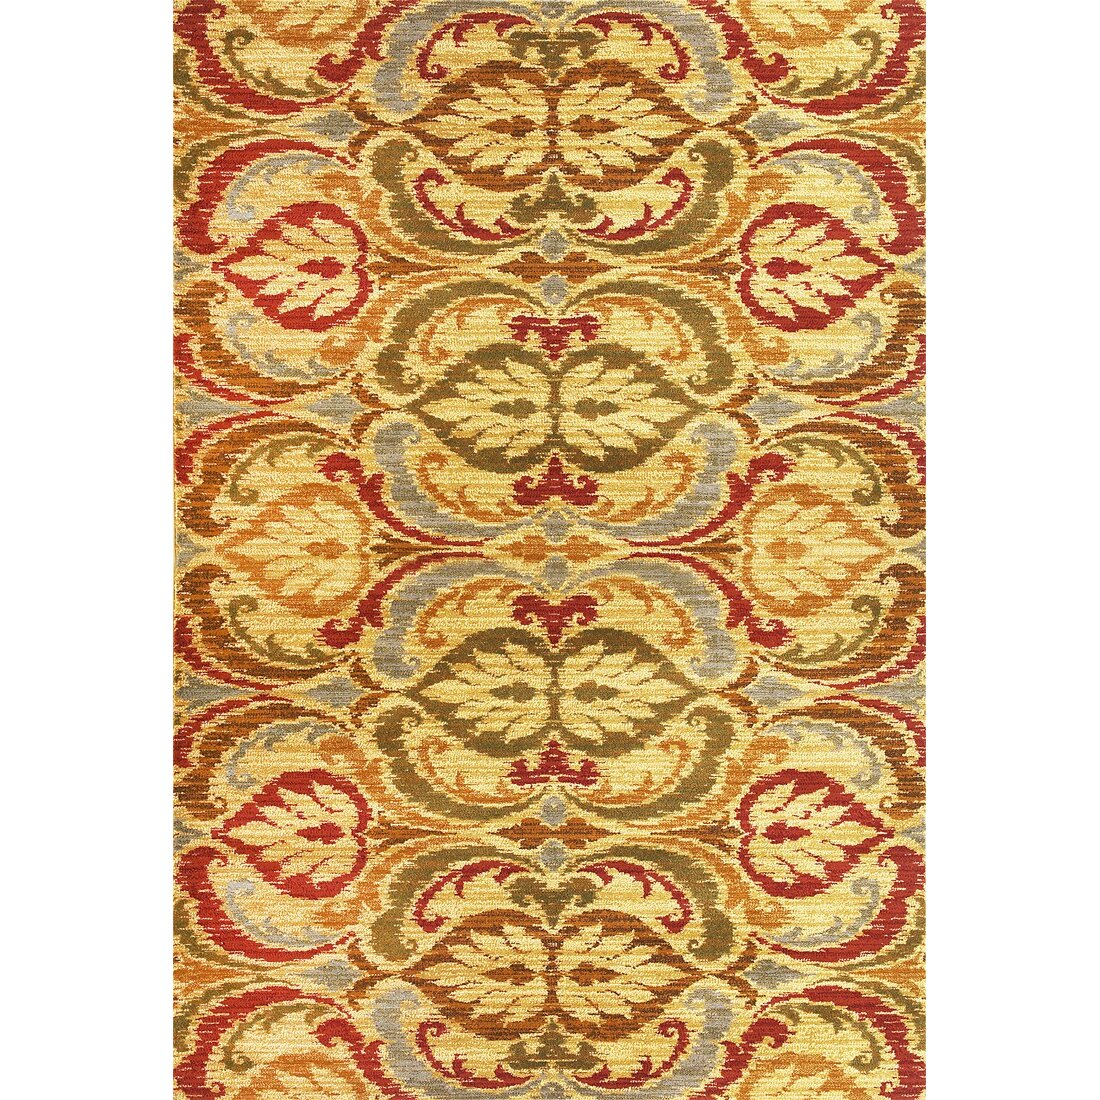 Kas rugs lifestyles gold firenze area rug reviews wayfair for Where can i buy area rugs